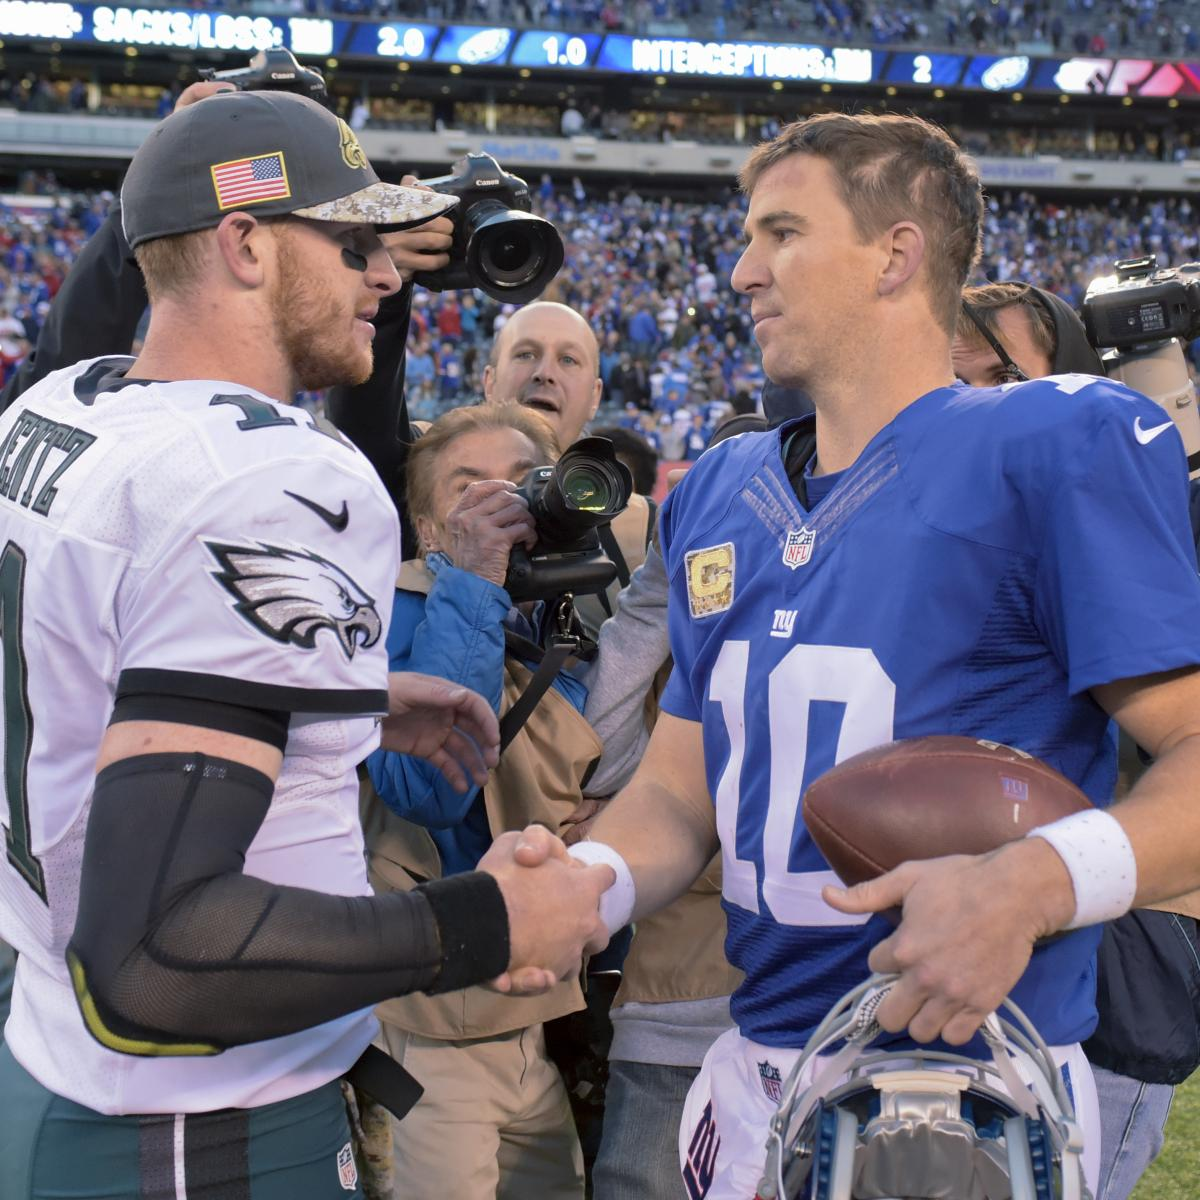 Eagles vs. Giants Spread and Full Prop Bet Odds Ahead of Thursday Night Football